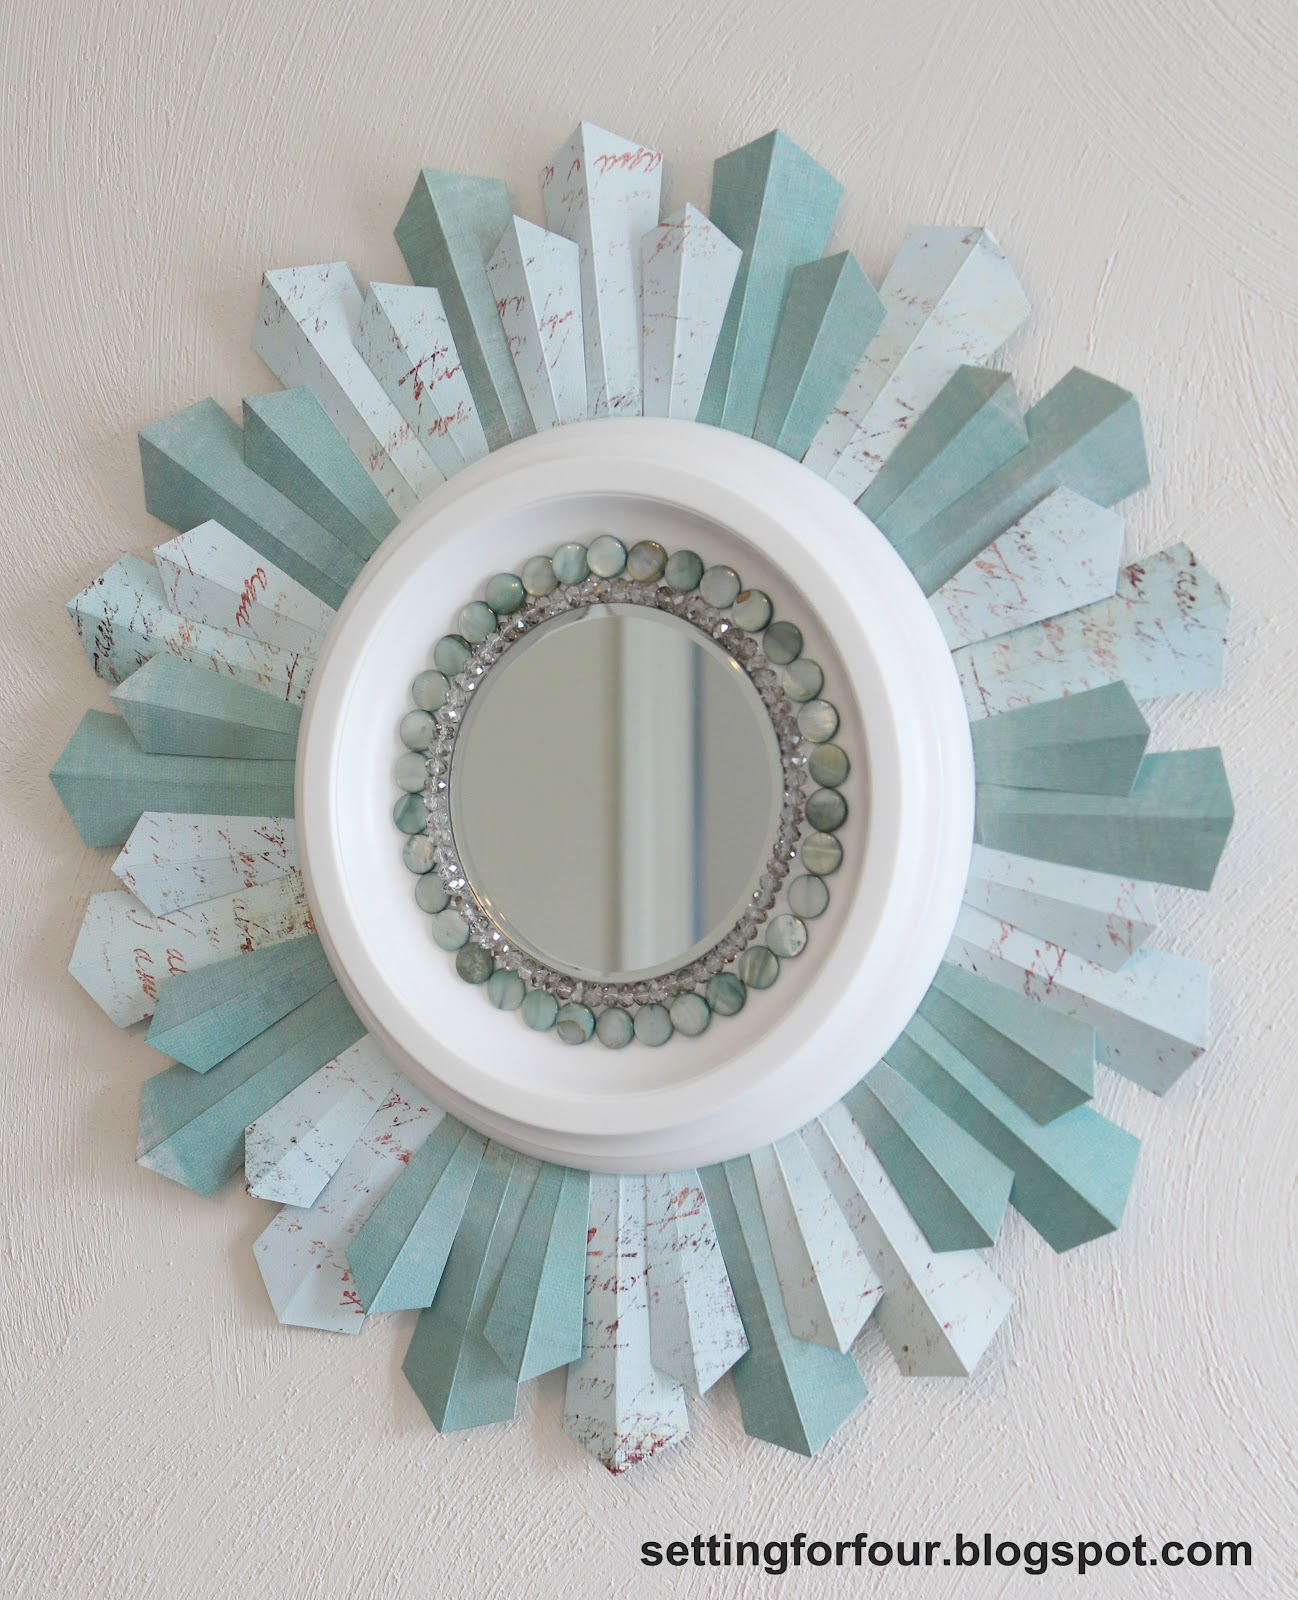 Cute sunburst mirrors with rustic table and night lap combined plus luxury wall